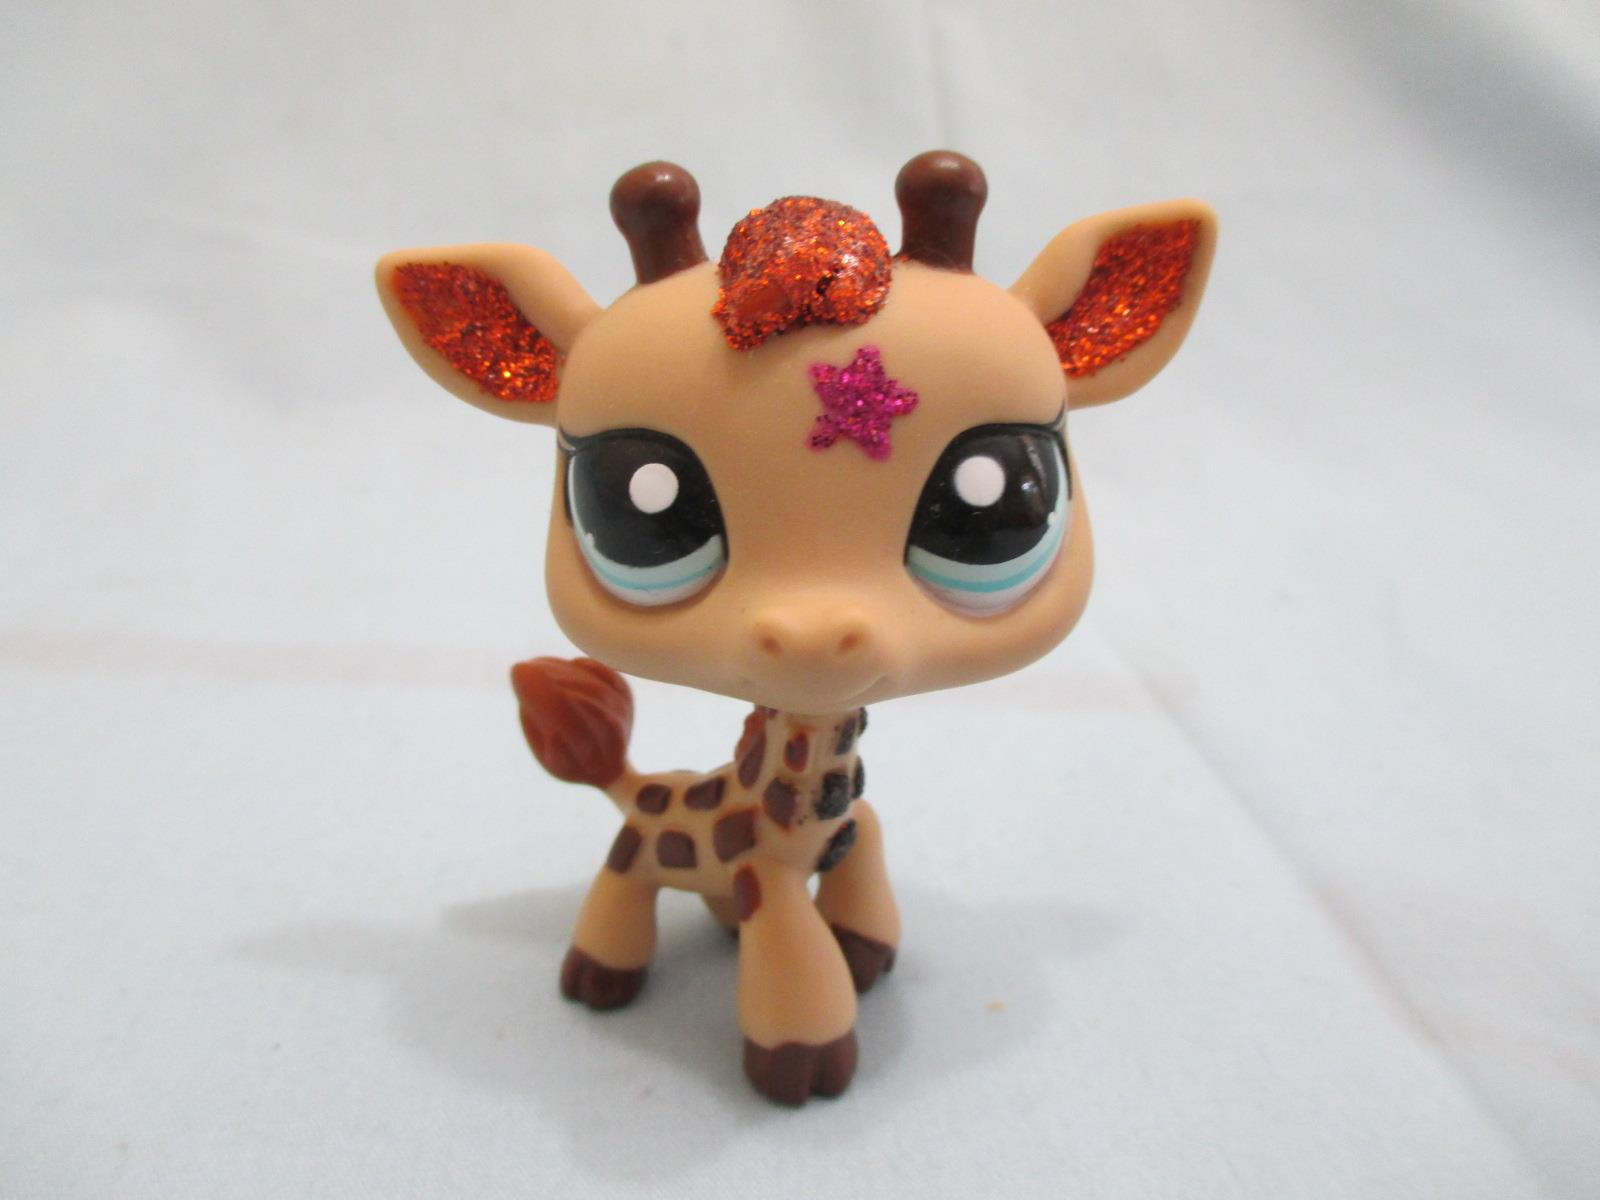 Littlest Pet Shop 2348 Sparkle Glitter Star Giraffe Authentic Lps